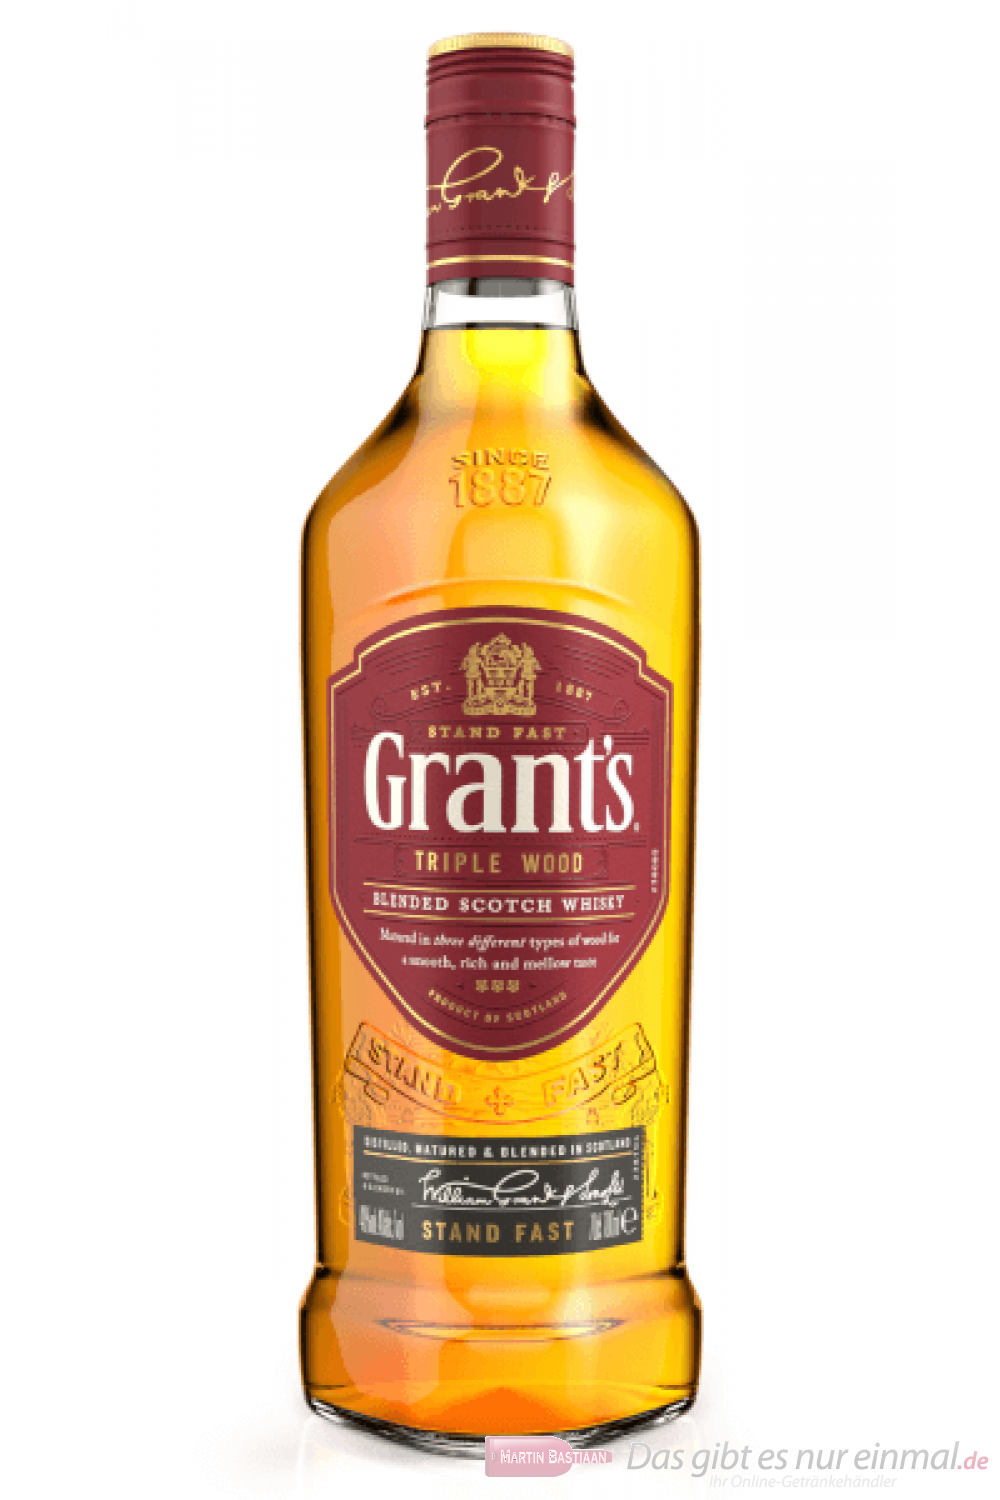 Grants Triple Wood Blended Scotch Whisky